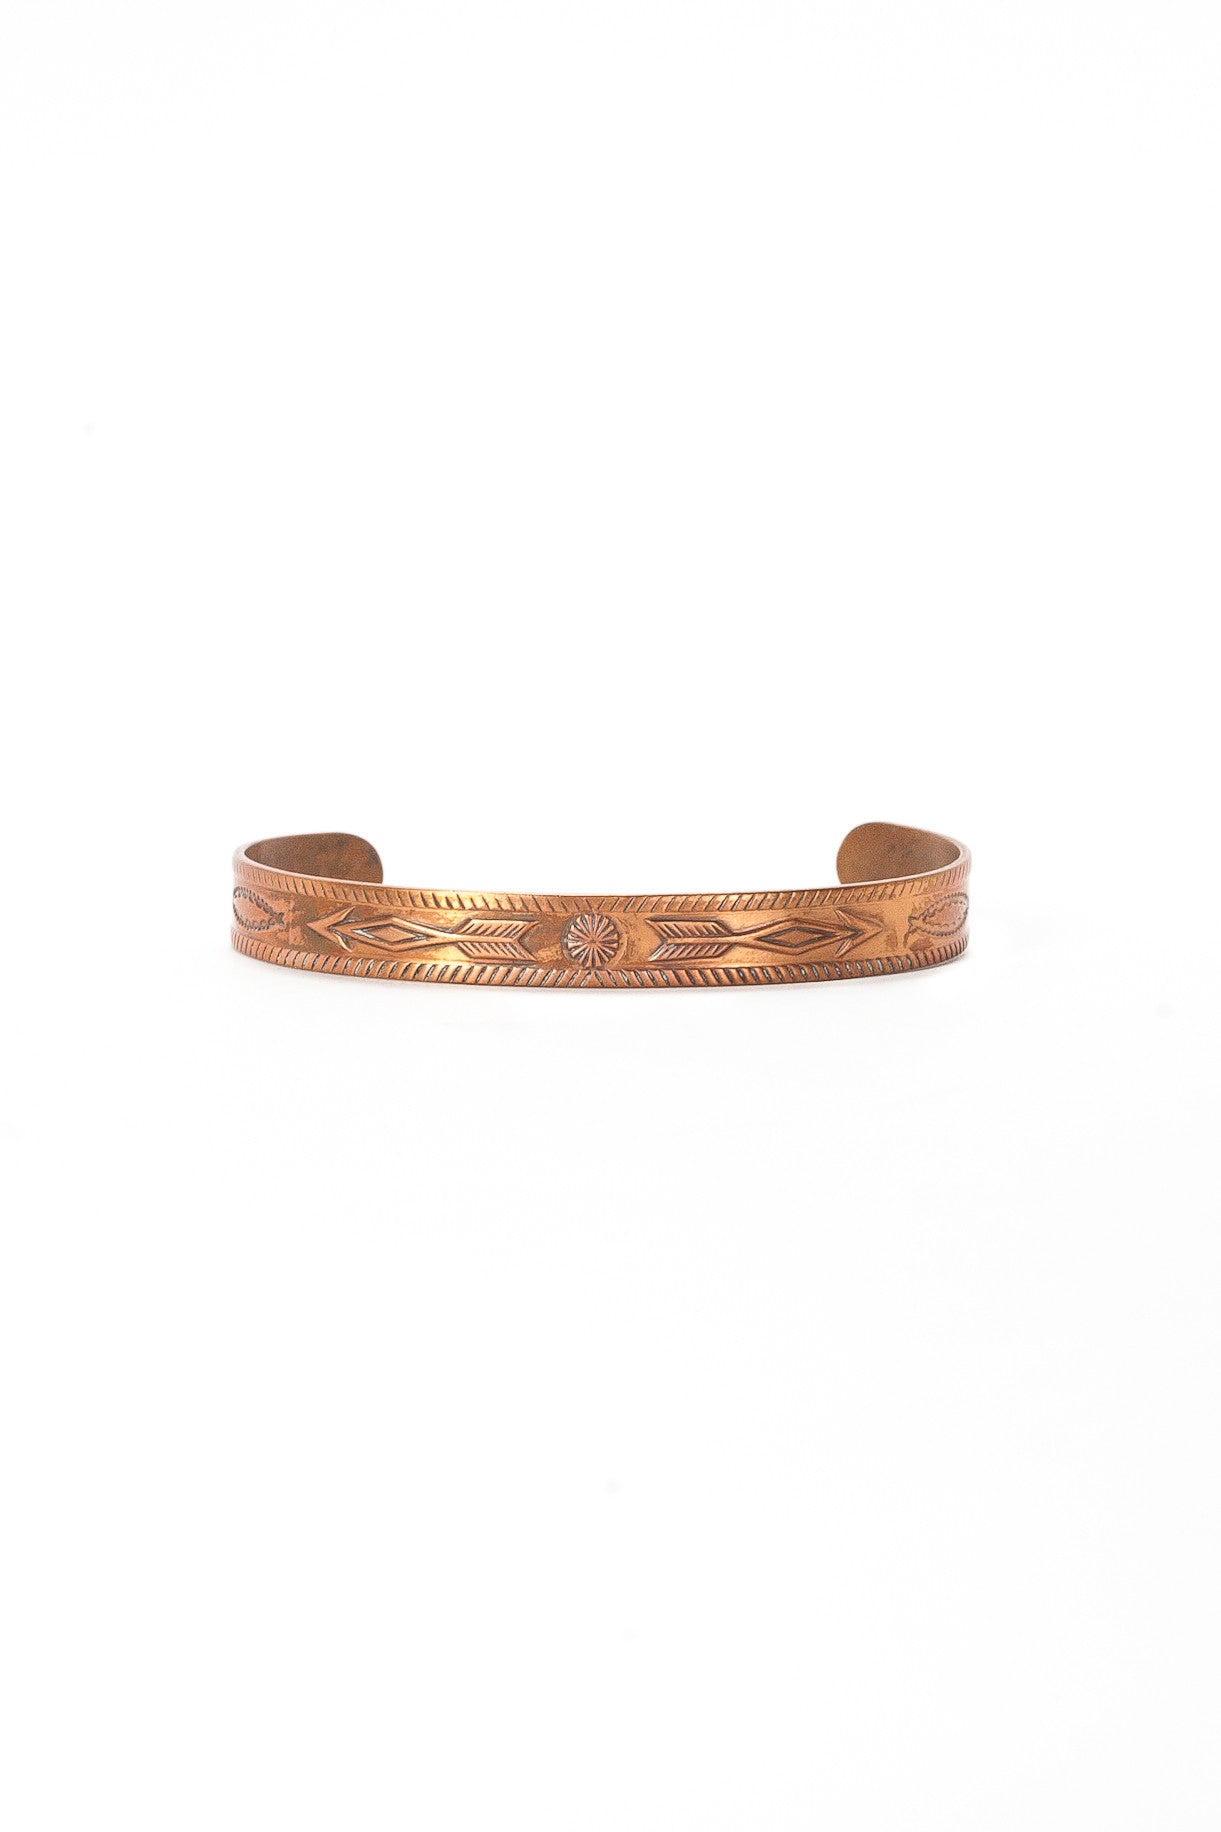 70's__Vintage__Copper Arrows Cuff